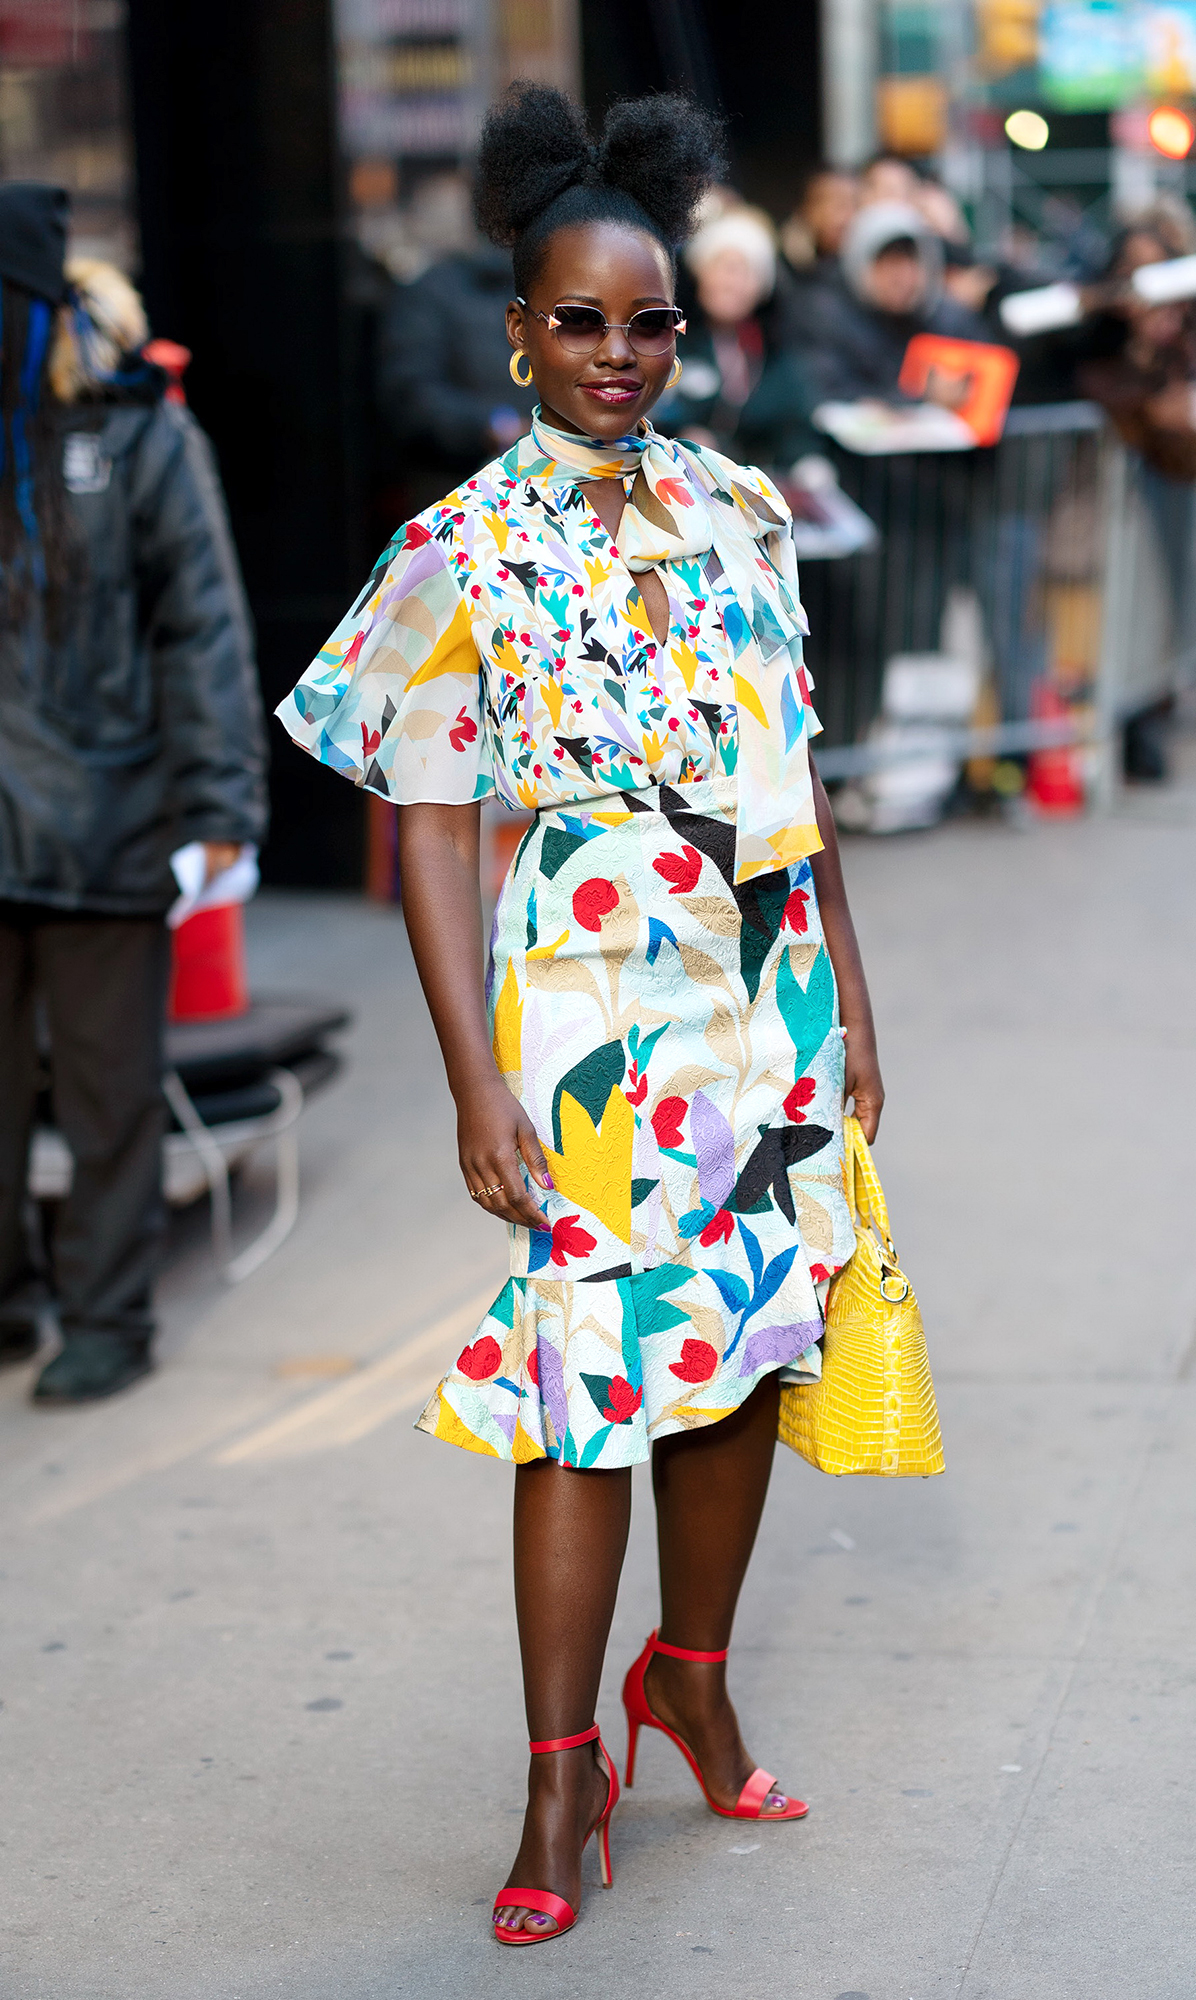 Lupita Nyong'o Can't Stop Wearing These $60 Sandals - Lupita Nyong'o at GMA on March 19, 2019 in New York City.